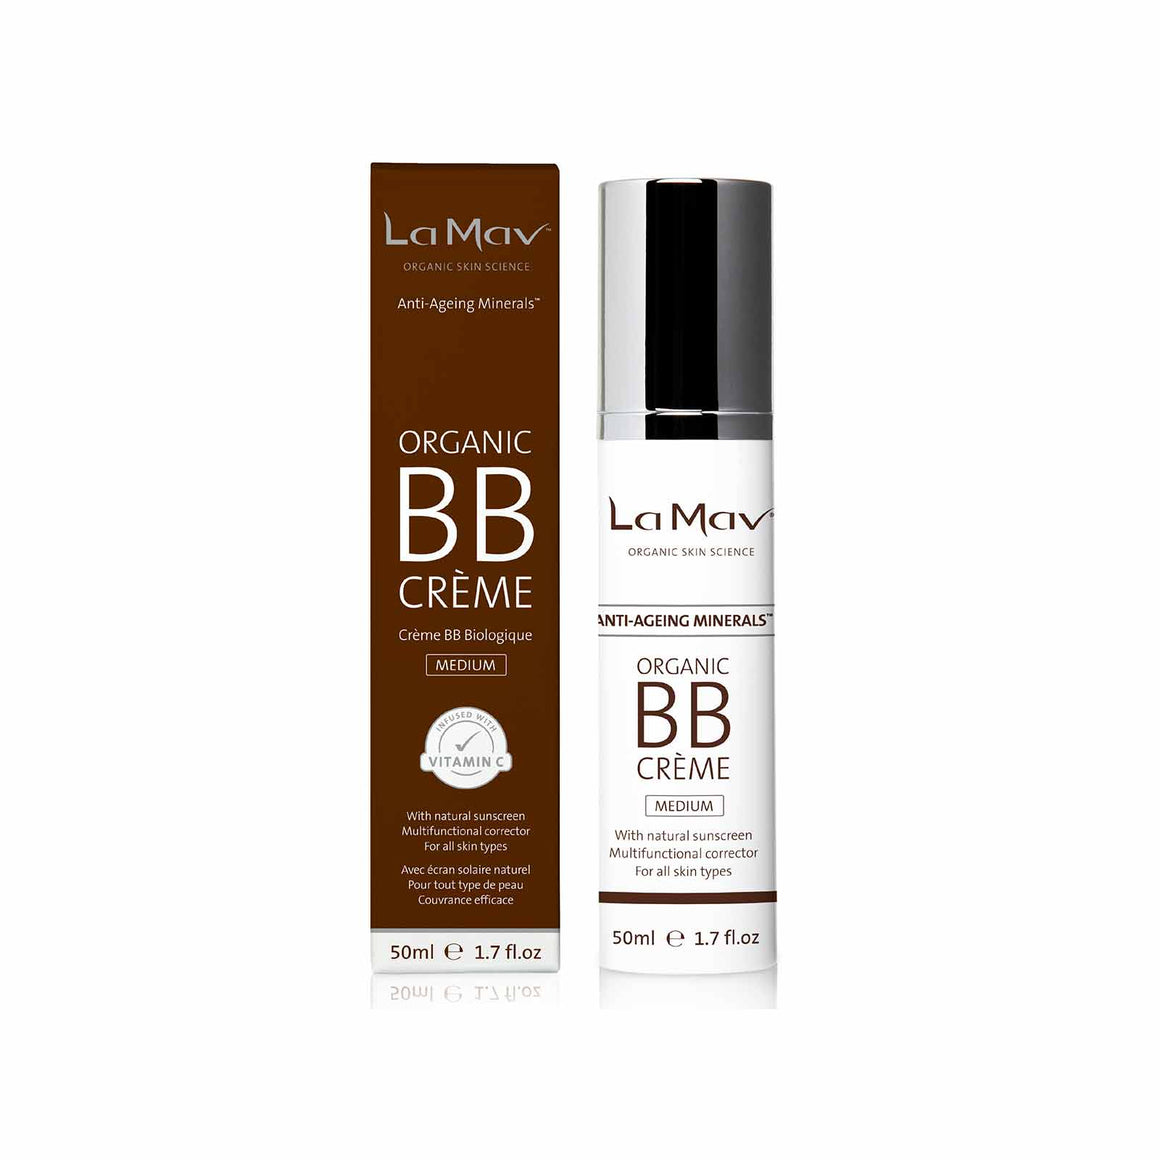 La Mav Certified Organic BB Crème Medium - 50ml